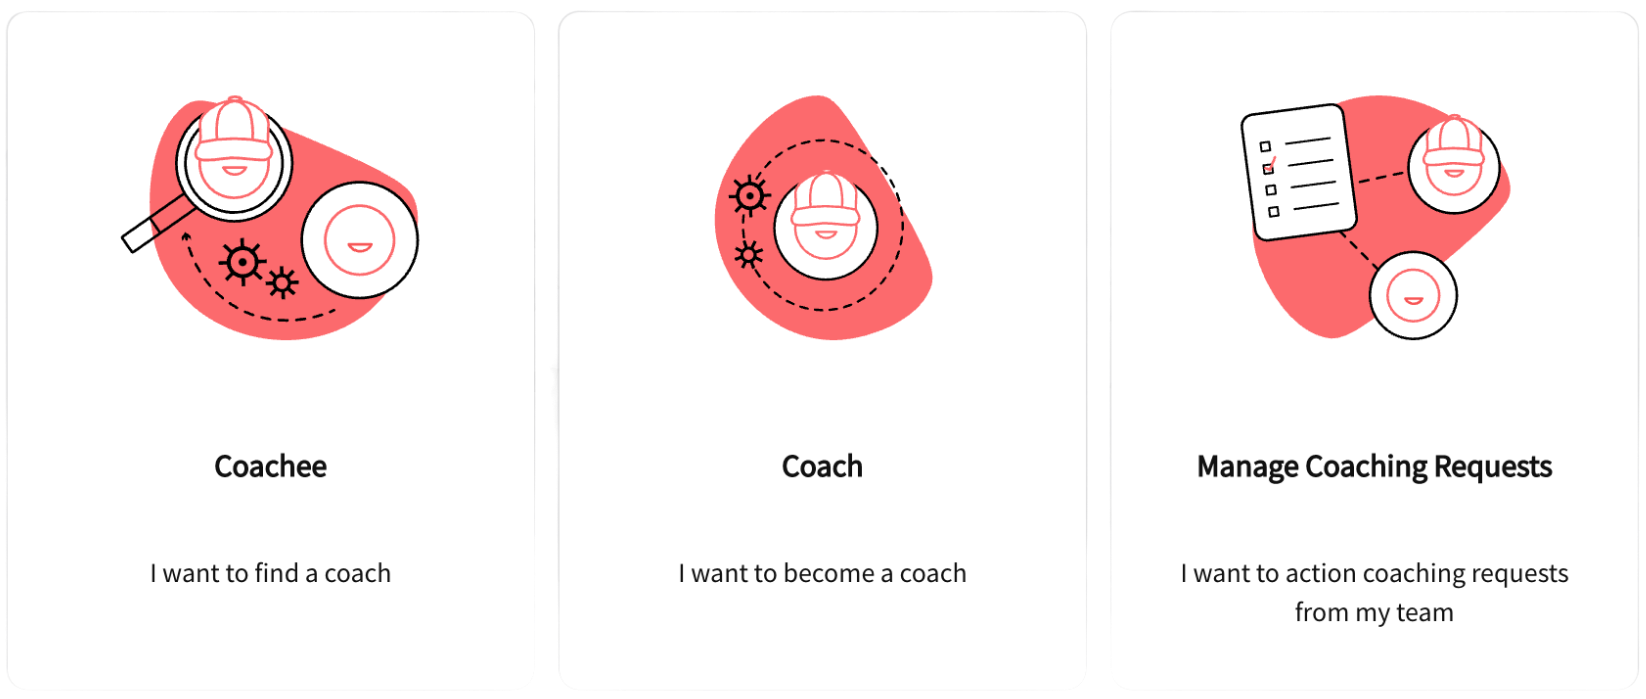 Product screenshot showing coaching functionality available in the frankli platform